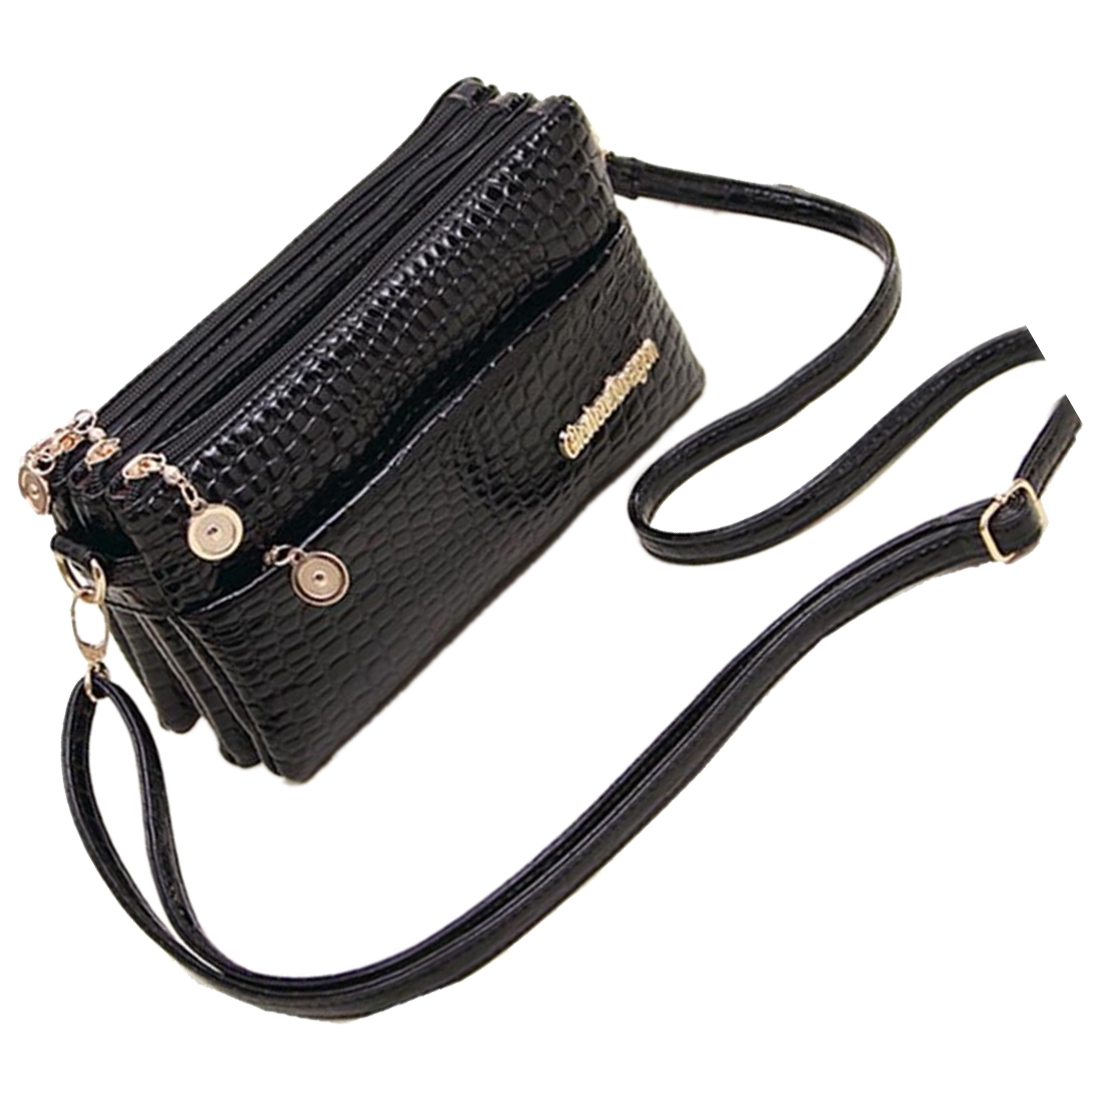 FGGS Hot Women handbags Small Shoulder Bag Crocodile Pattern Women Messenger Bags for Women Handbag Clutch BlackFGGS Hot Women handbags Small Shoulder Bag Crocodile Pattern Women Messenger Bags for Women Handbag Clutch Black